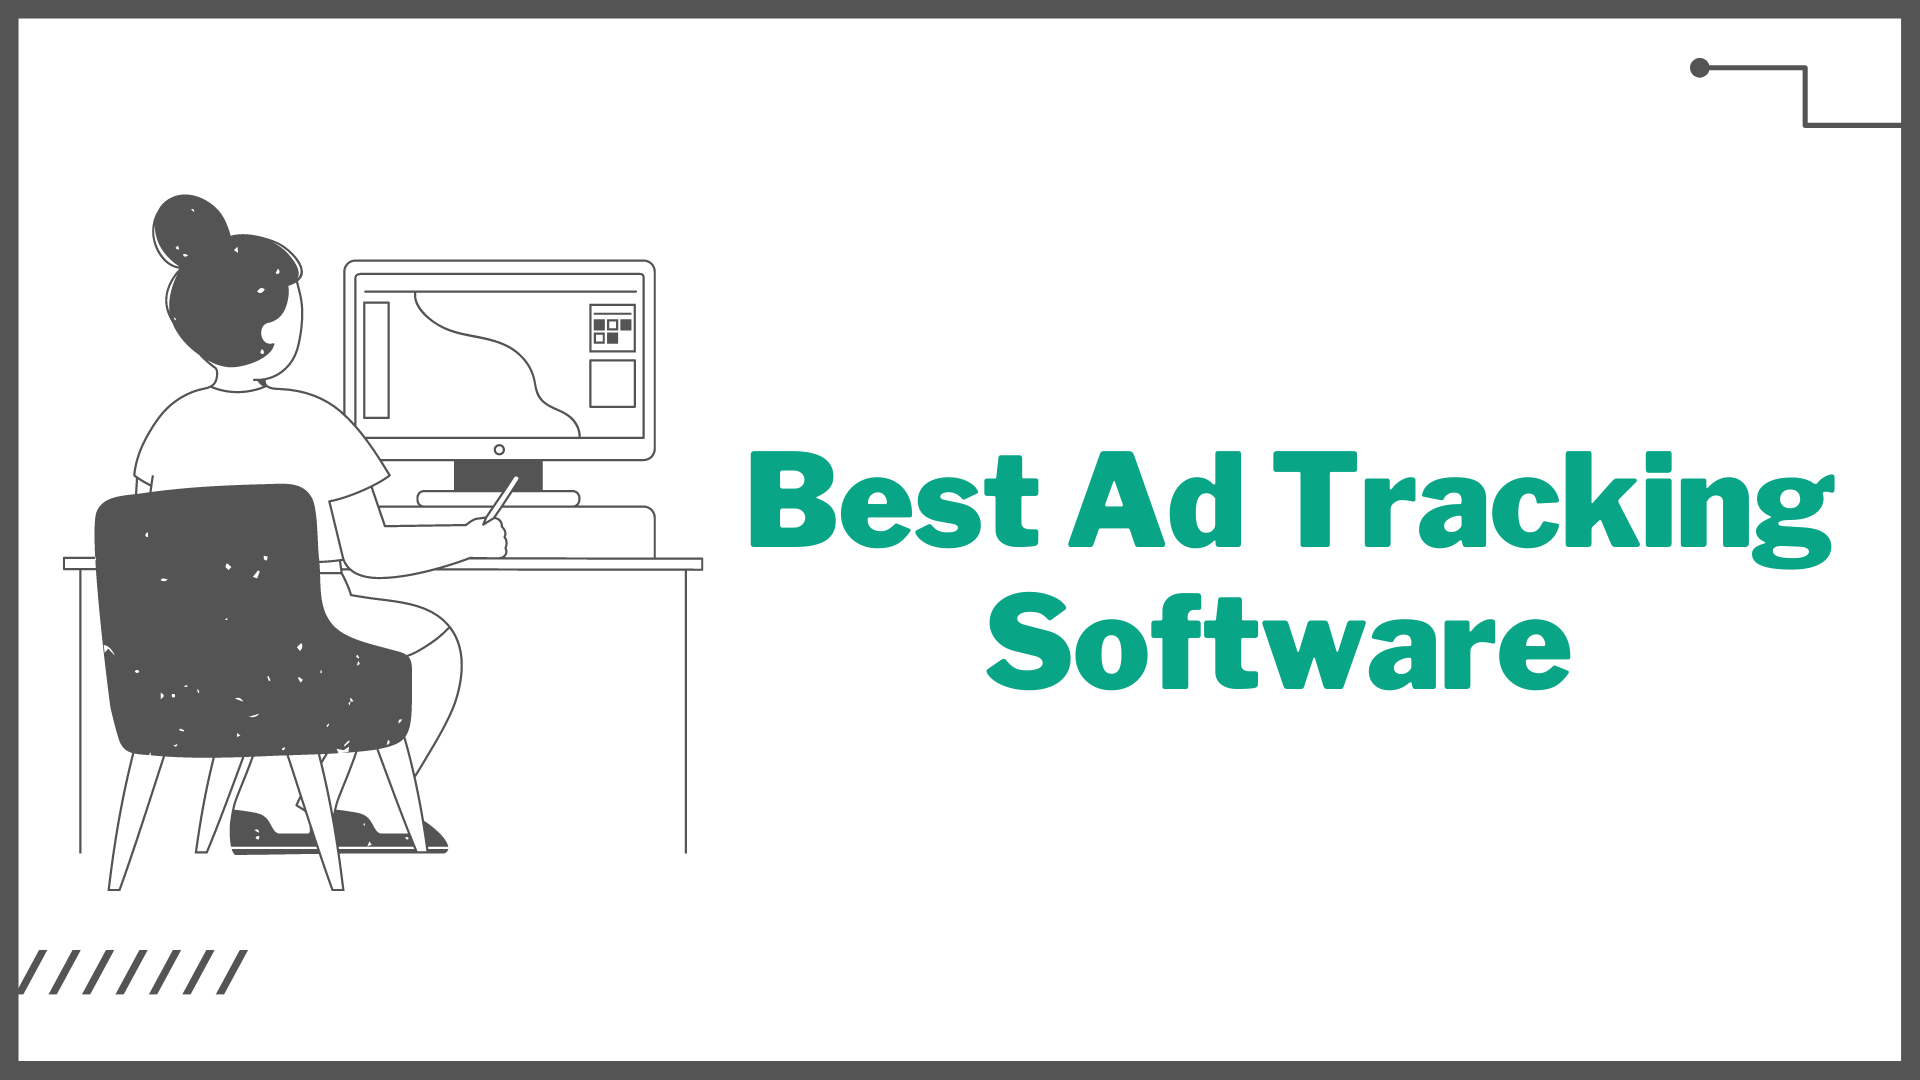 Best Ad Tracking Software